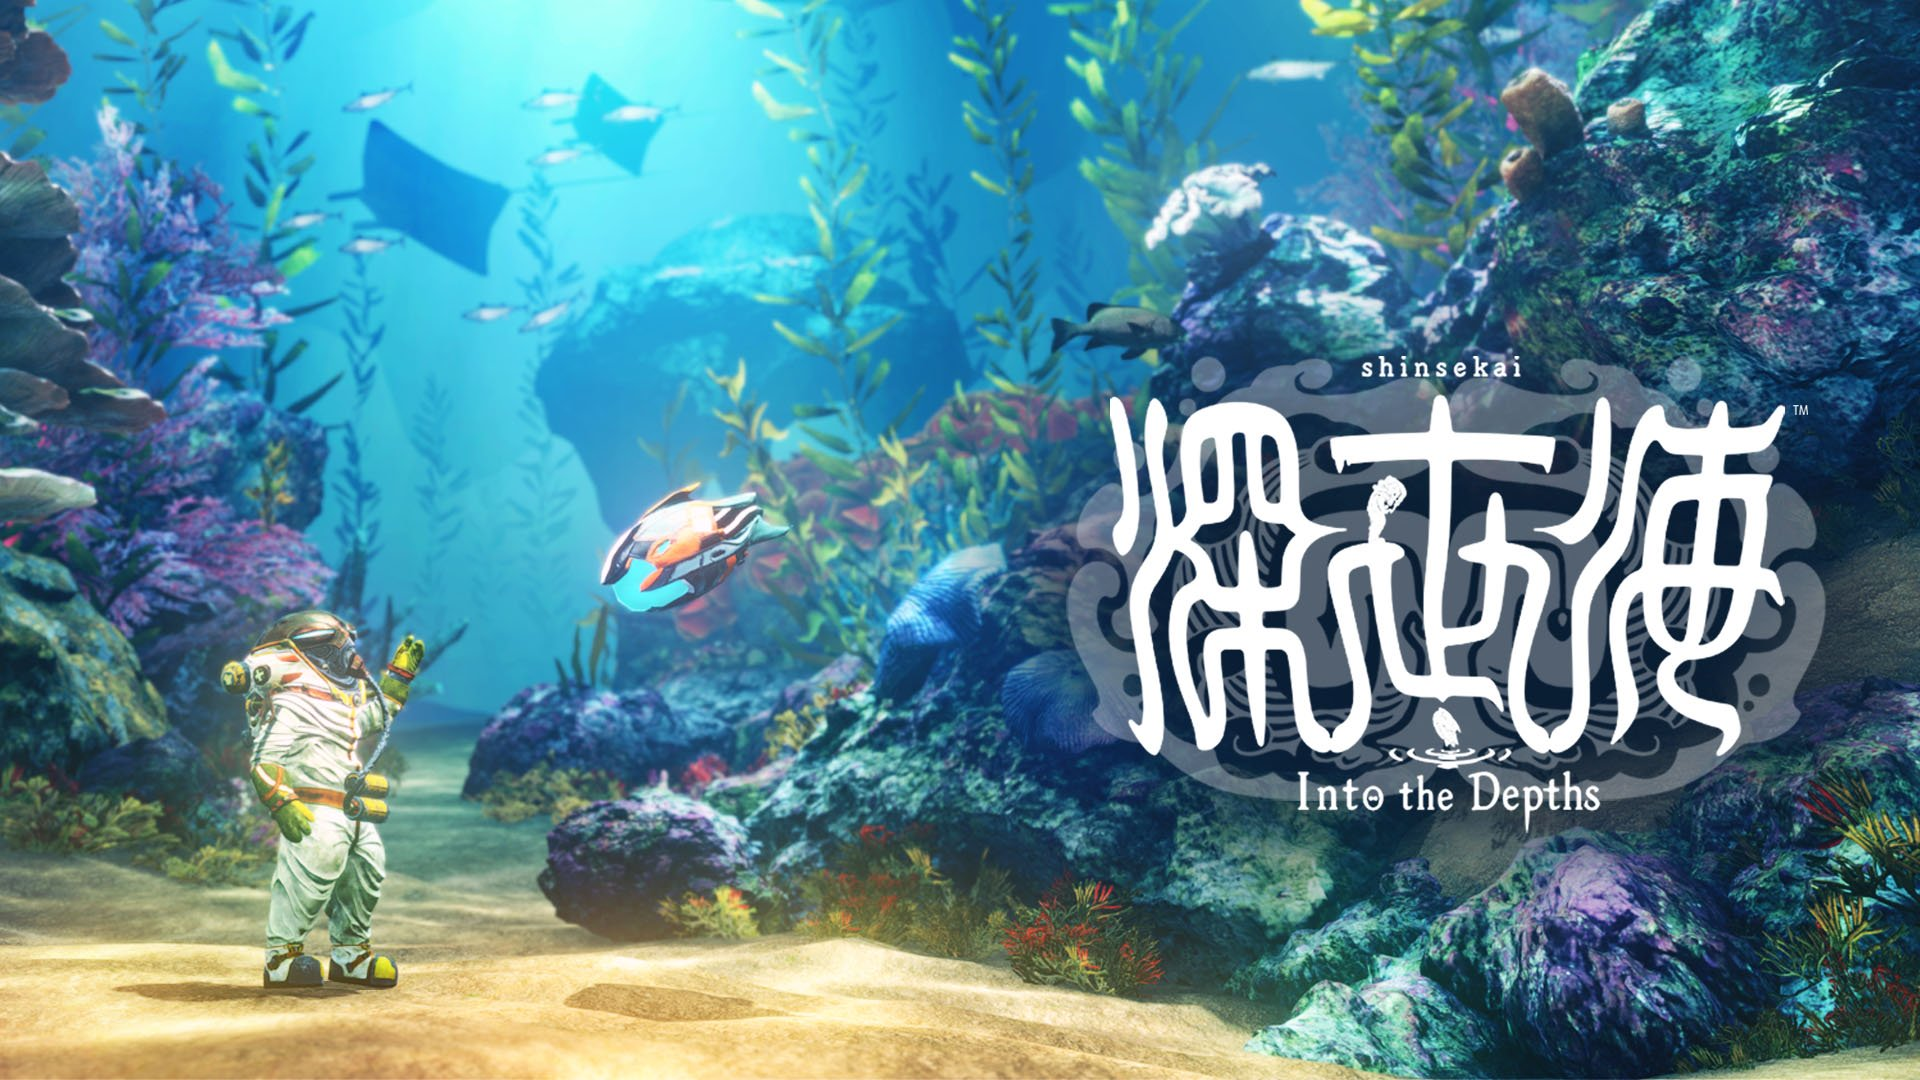 Capcom's Shinsekai: Into the Depths Now Available On The Nintendo Switch